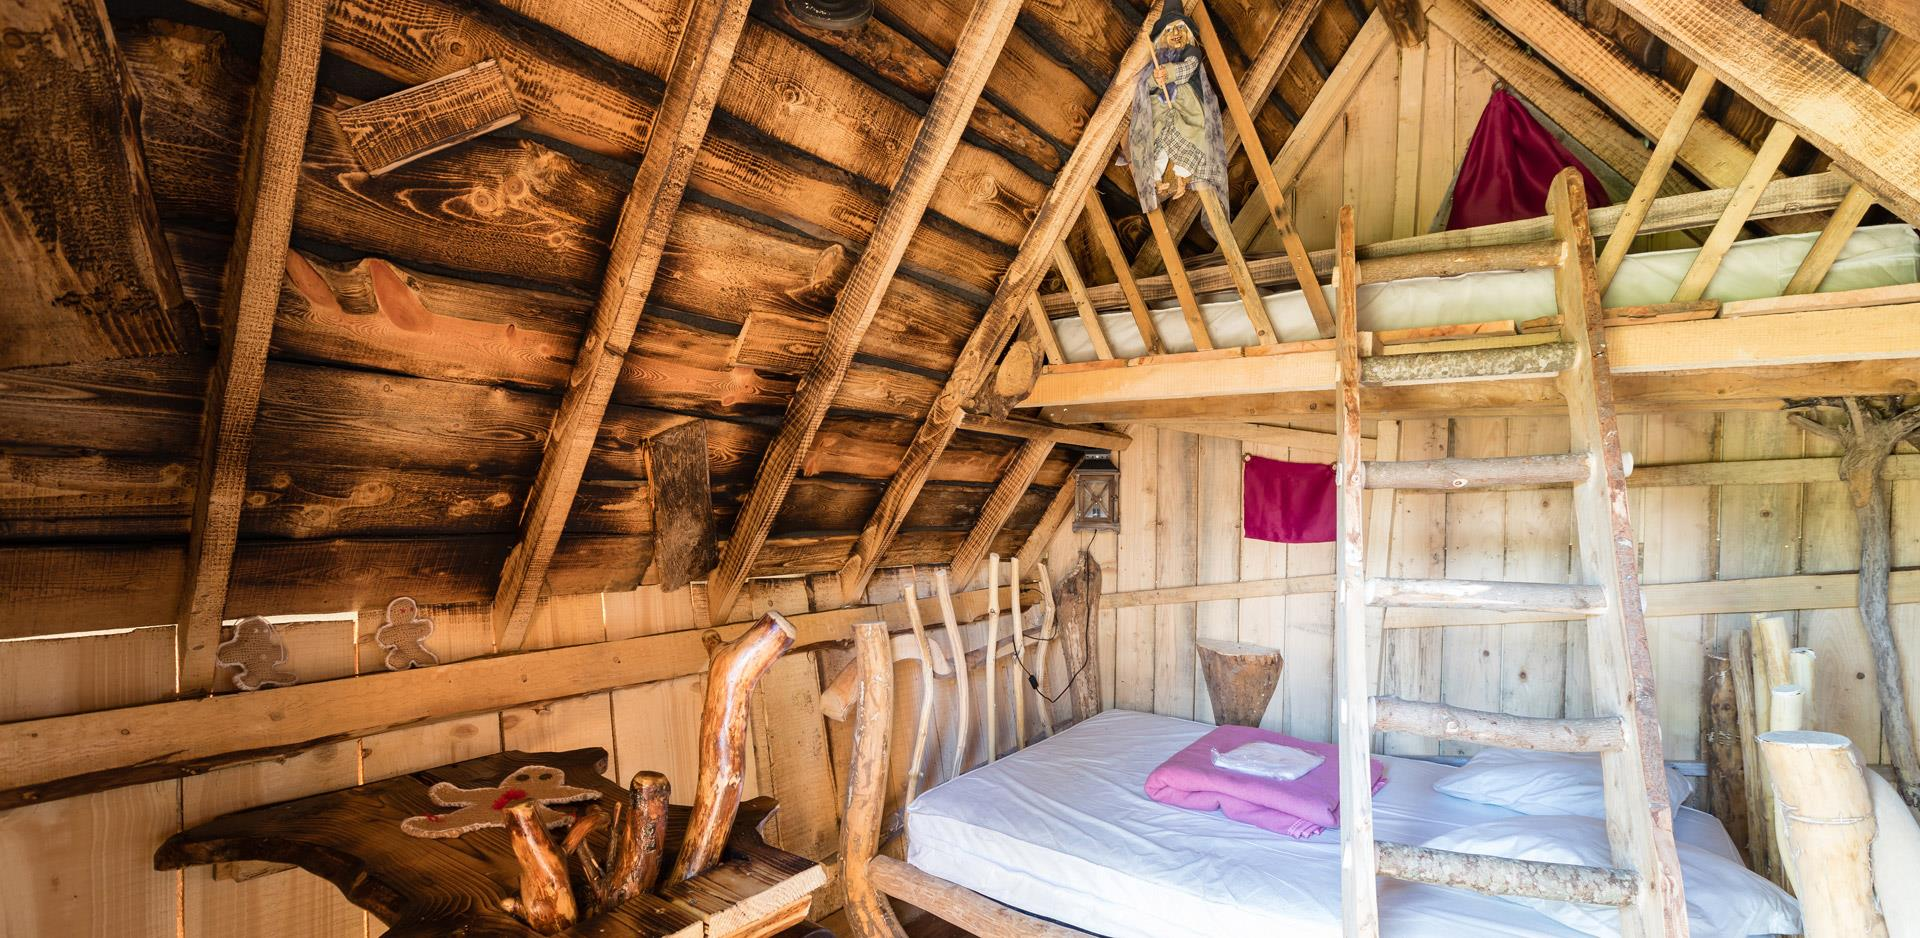 Rental of atypical accommodations near the Vosges Mountains: view of a bedroom area of a wooden cabin